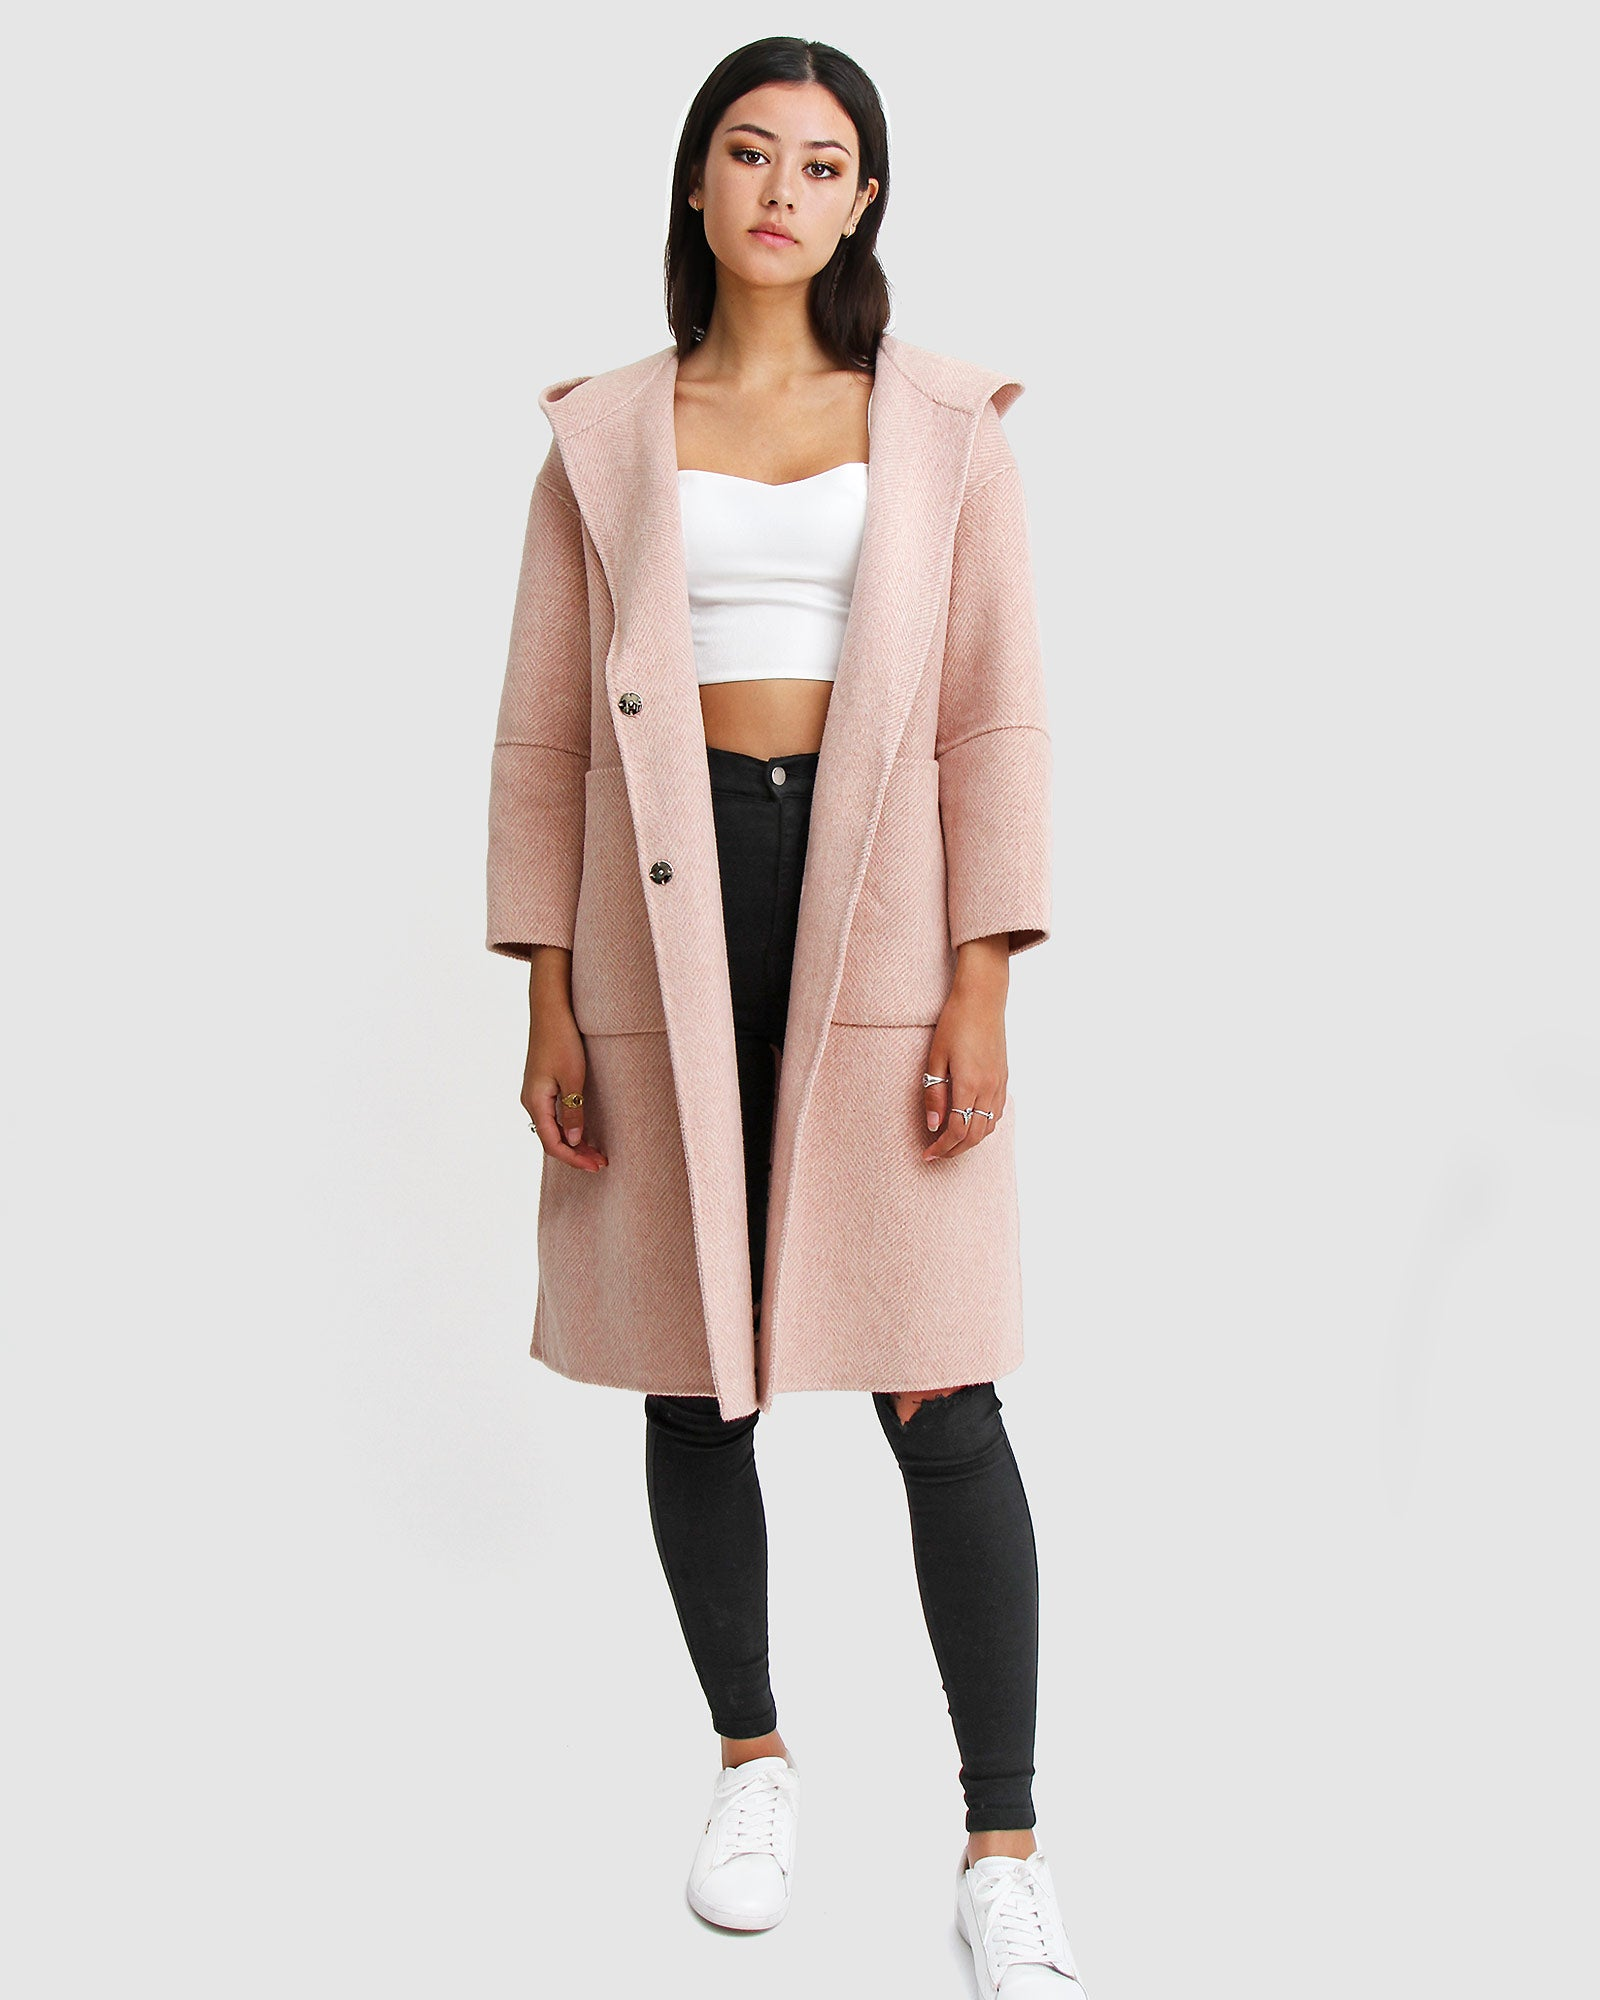 Walk This Way Wool Blend Oversized Coat - Blush Pink